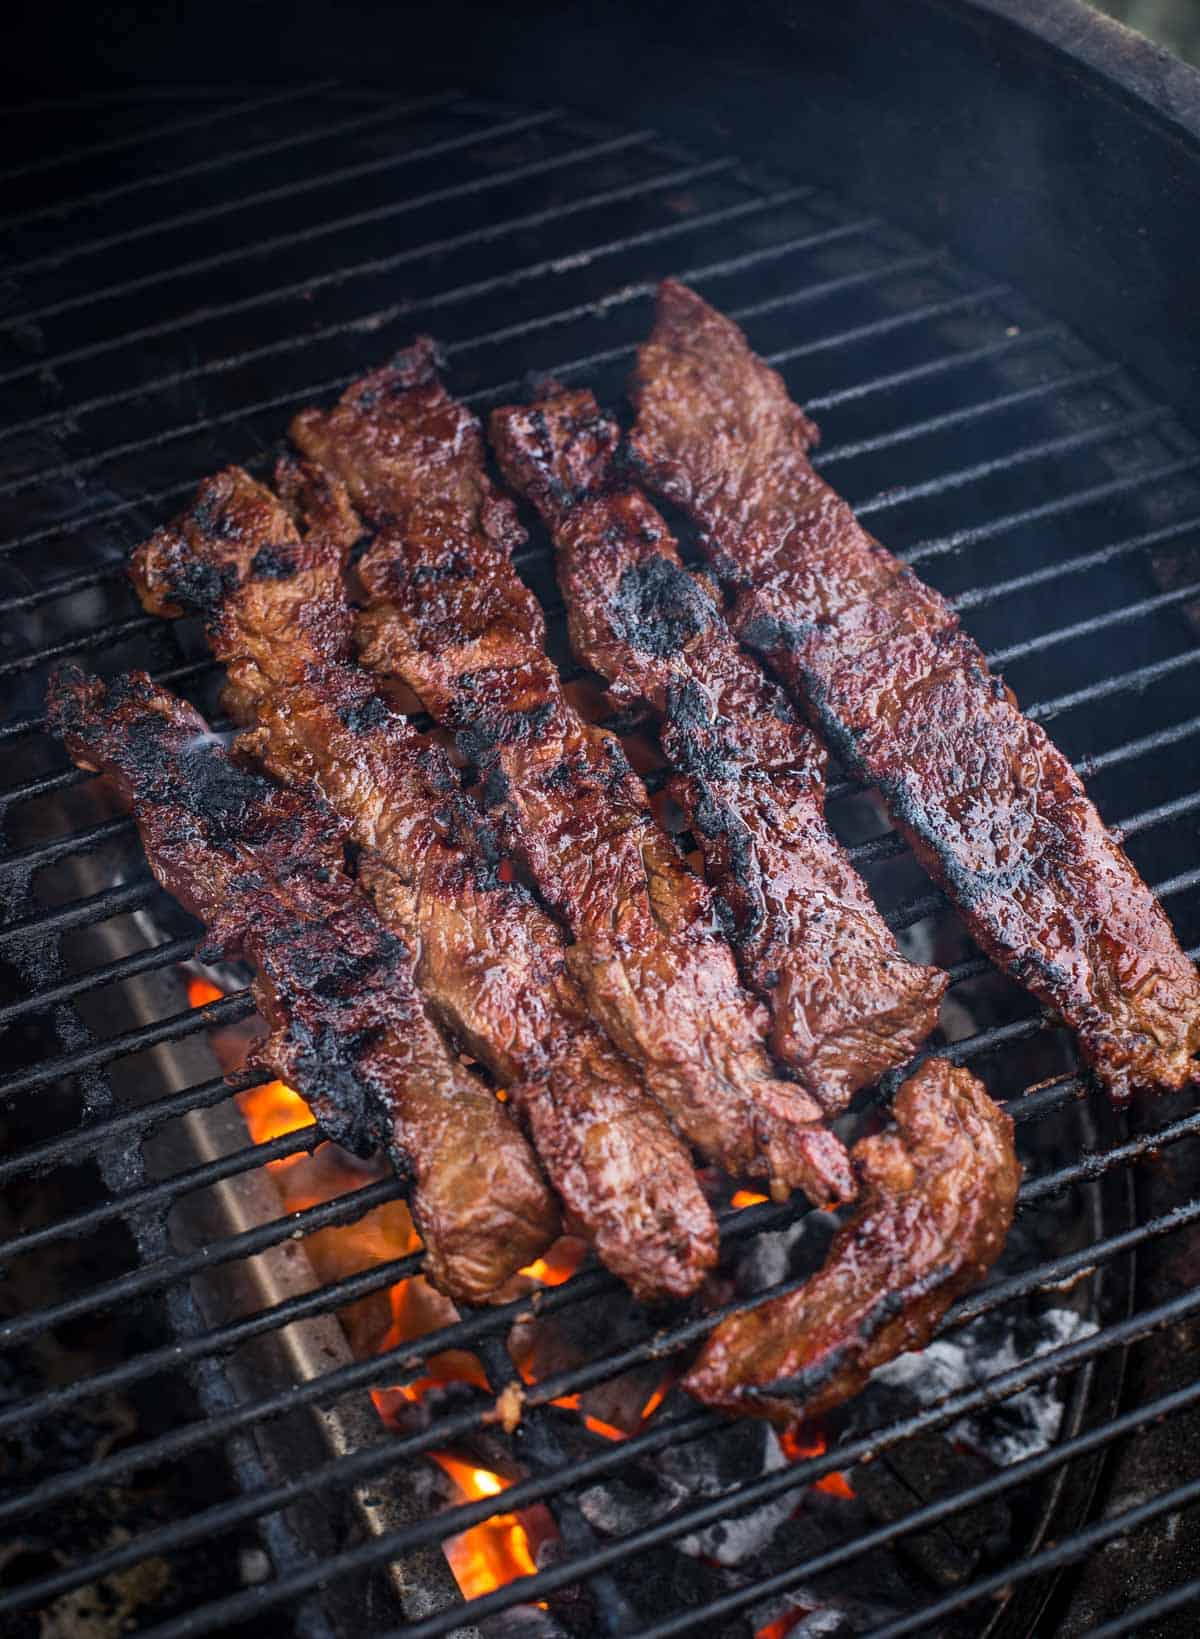 Flanken steak slices cooking on the grill